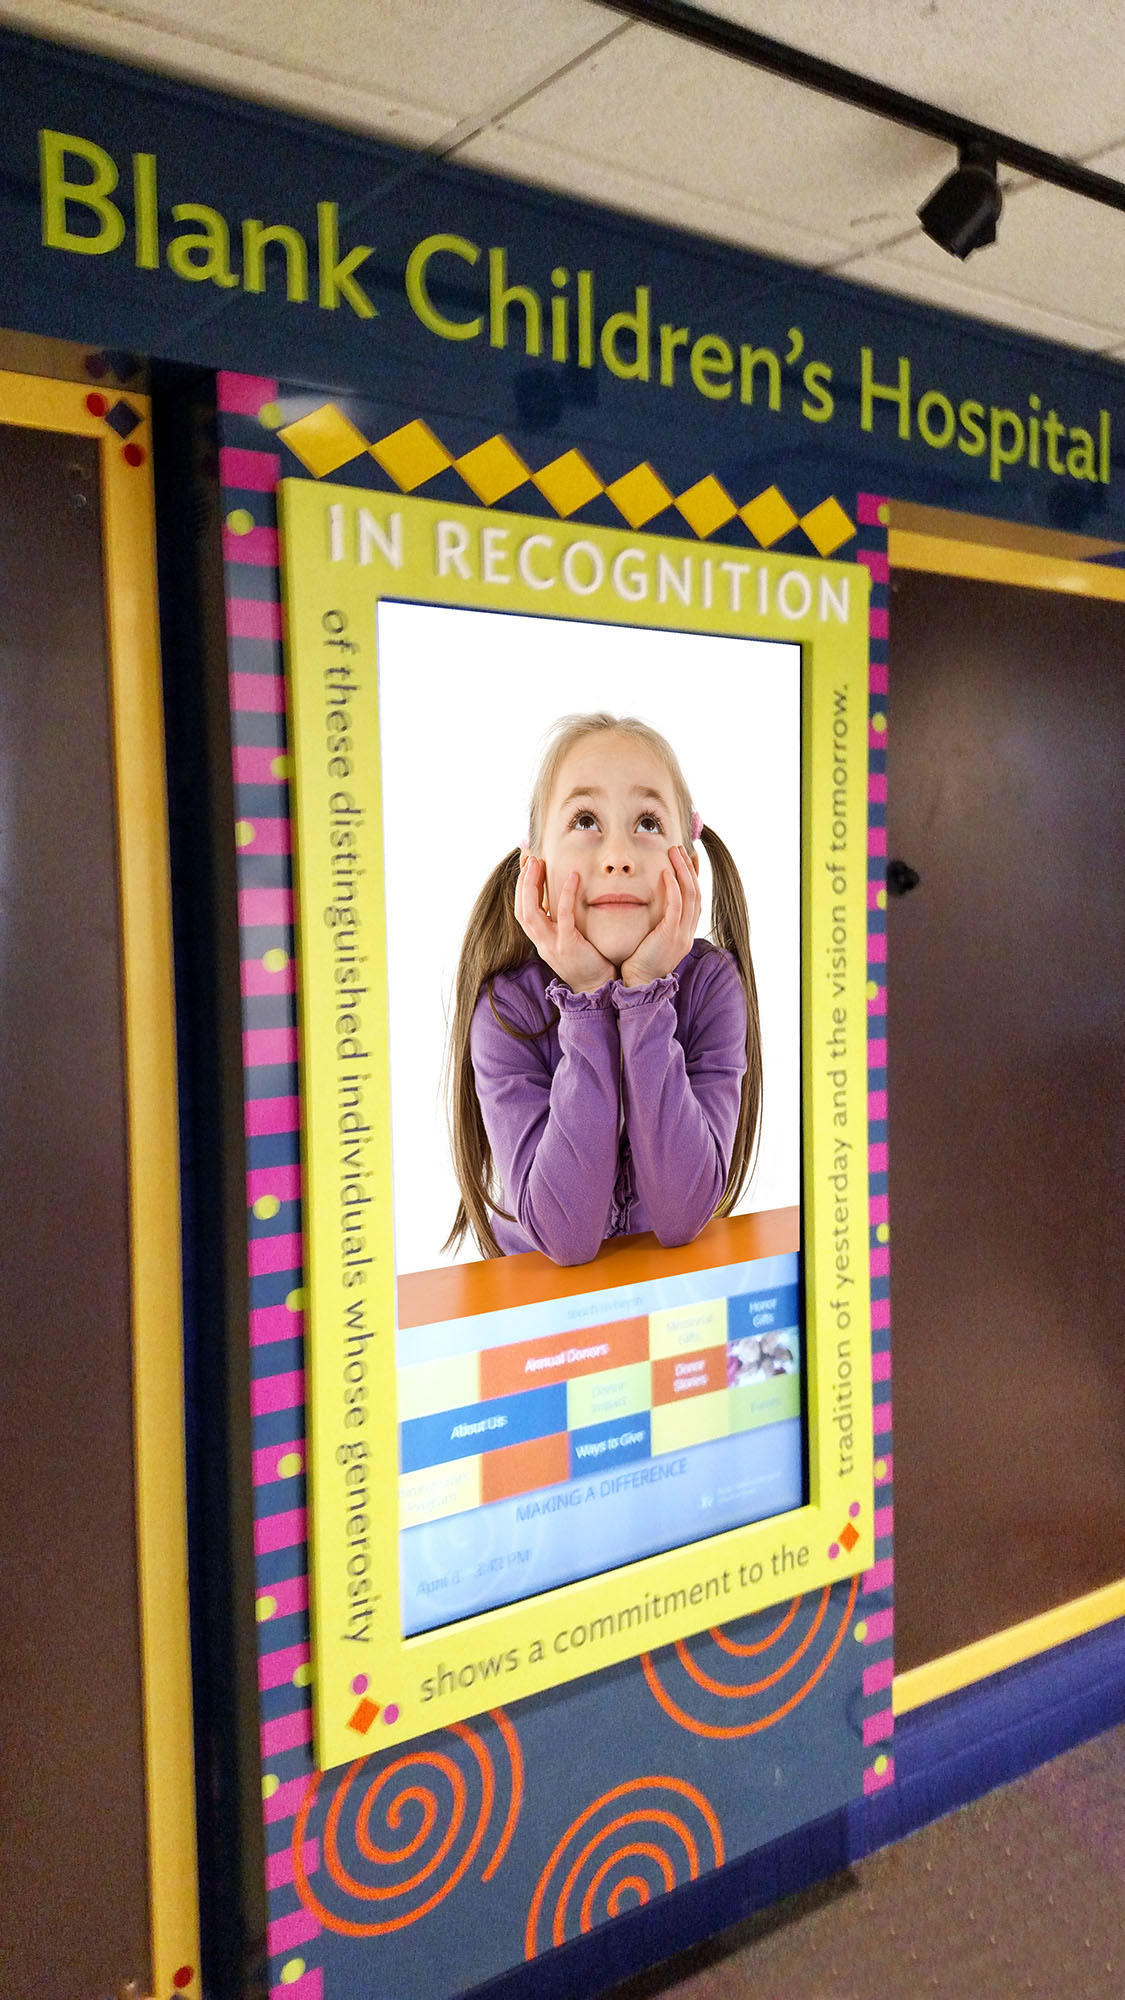 Digital Donor Recognition Wall for Hospital - Des Moines, IA